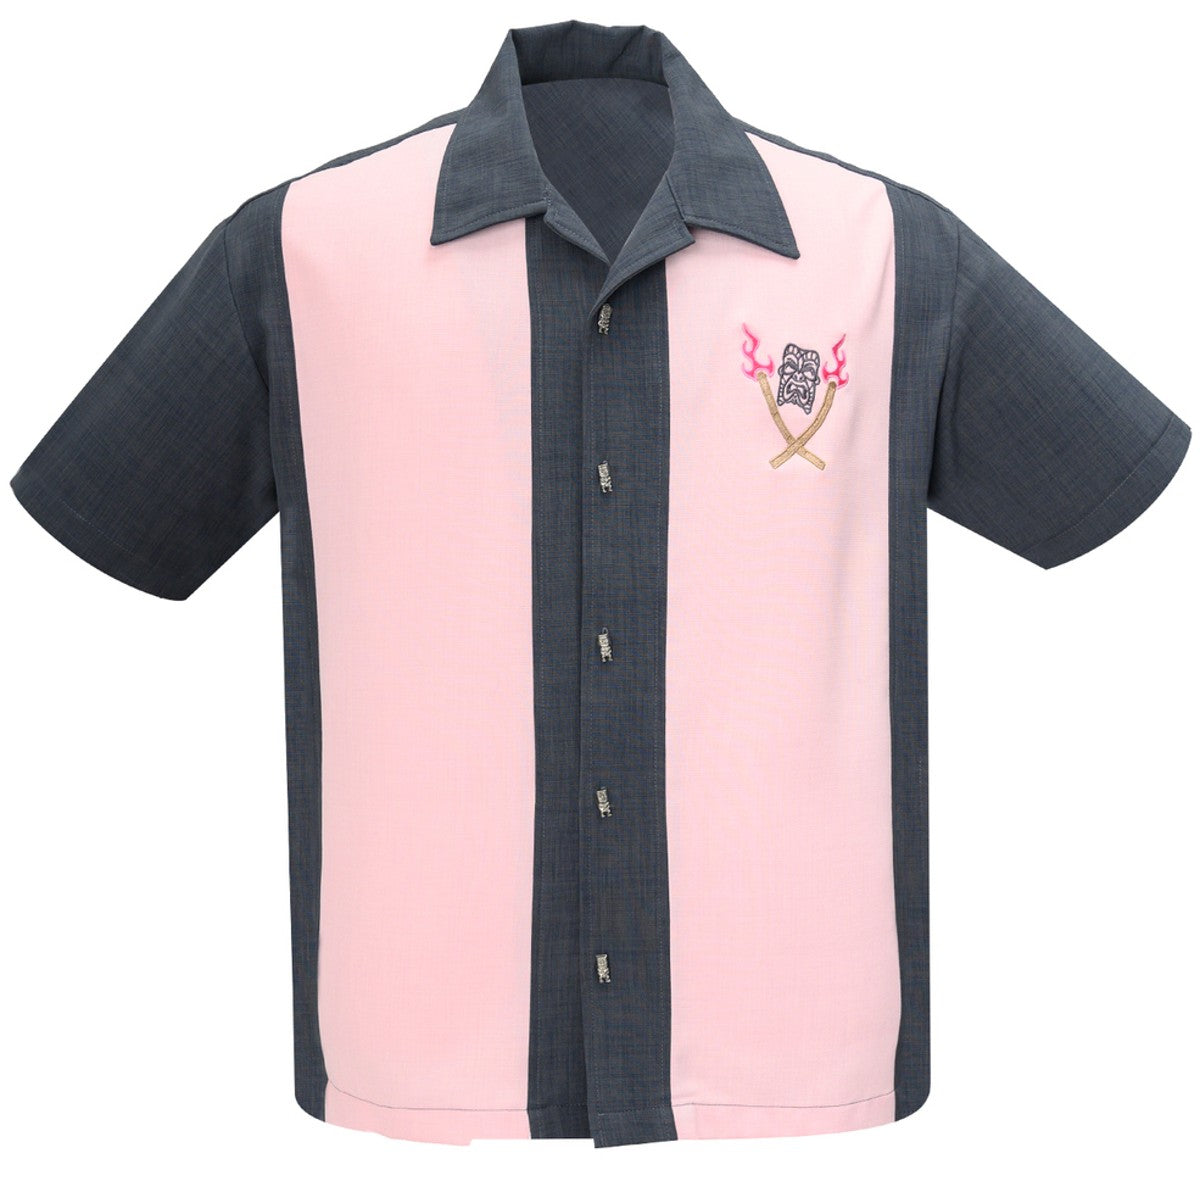 Steady Clothing Tropical Itch Tiki Button Embroidered Grey Pink Bowling Shirt